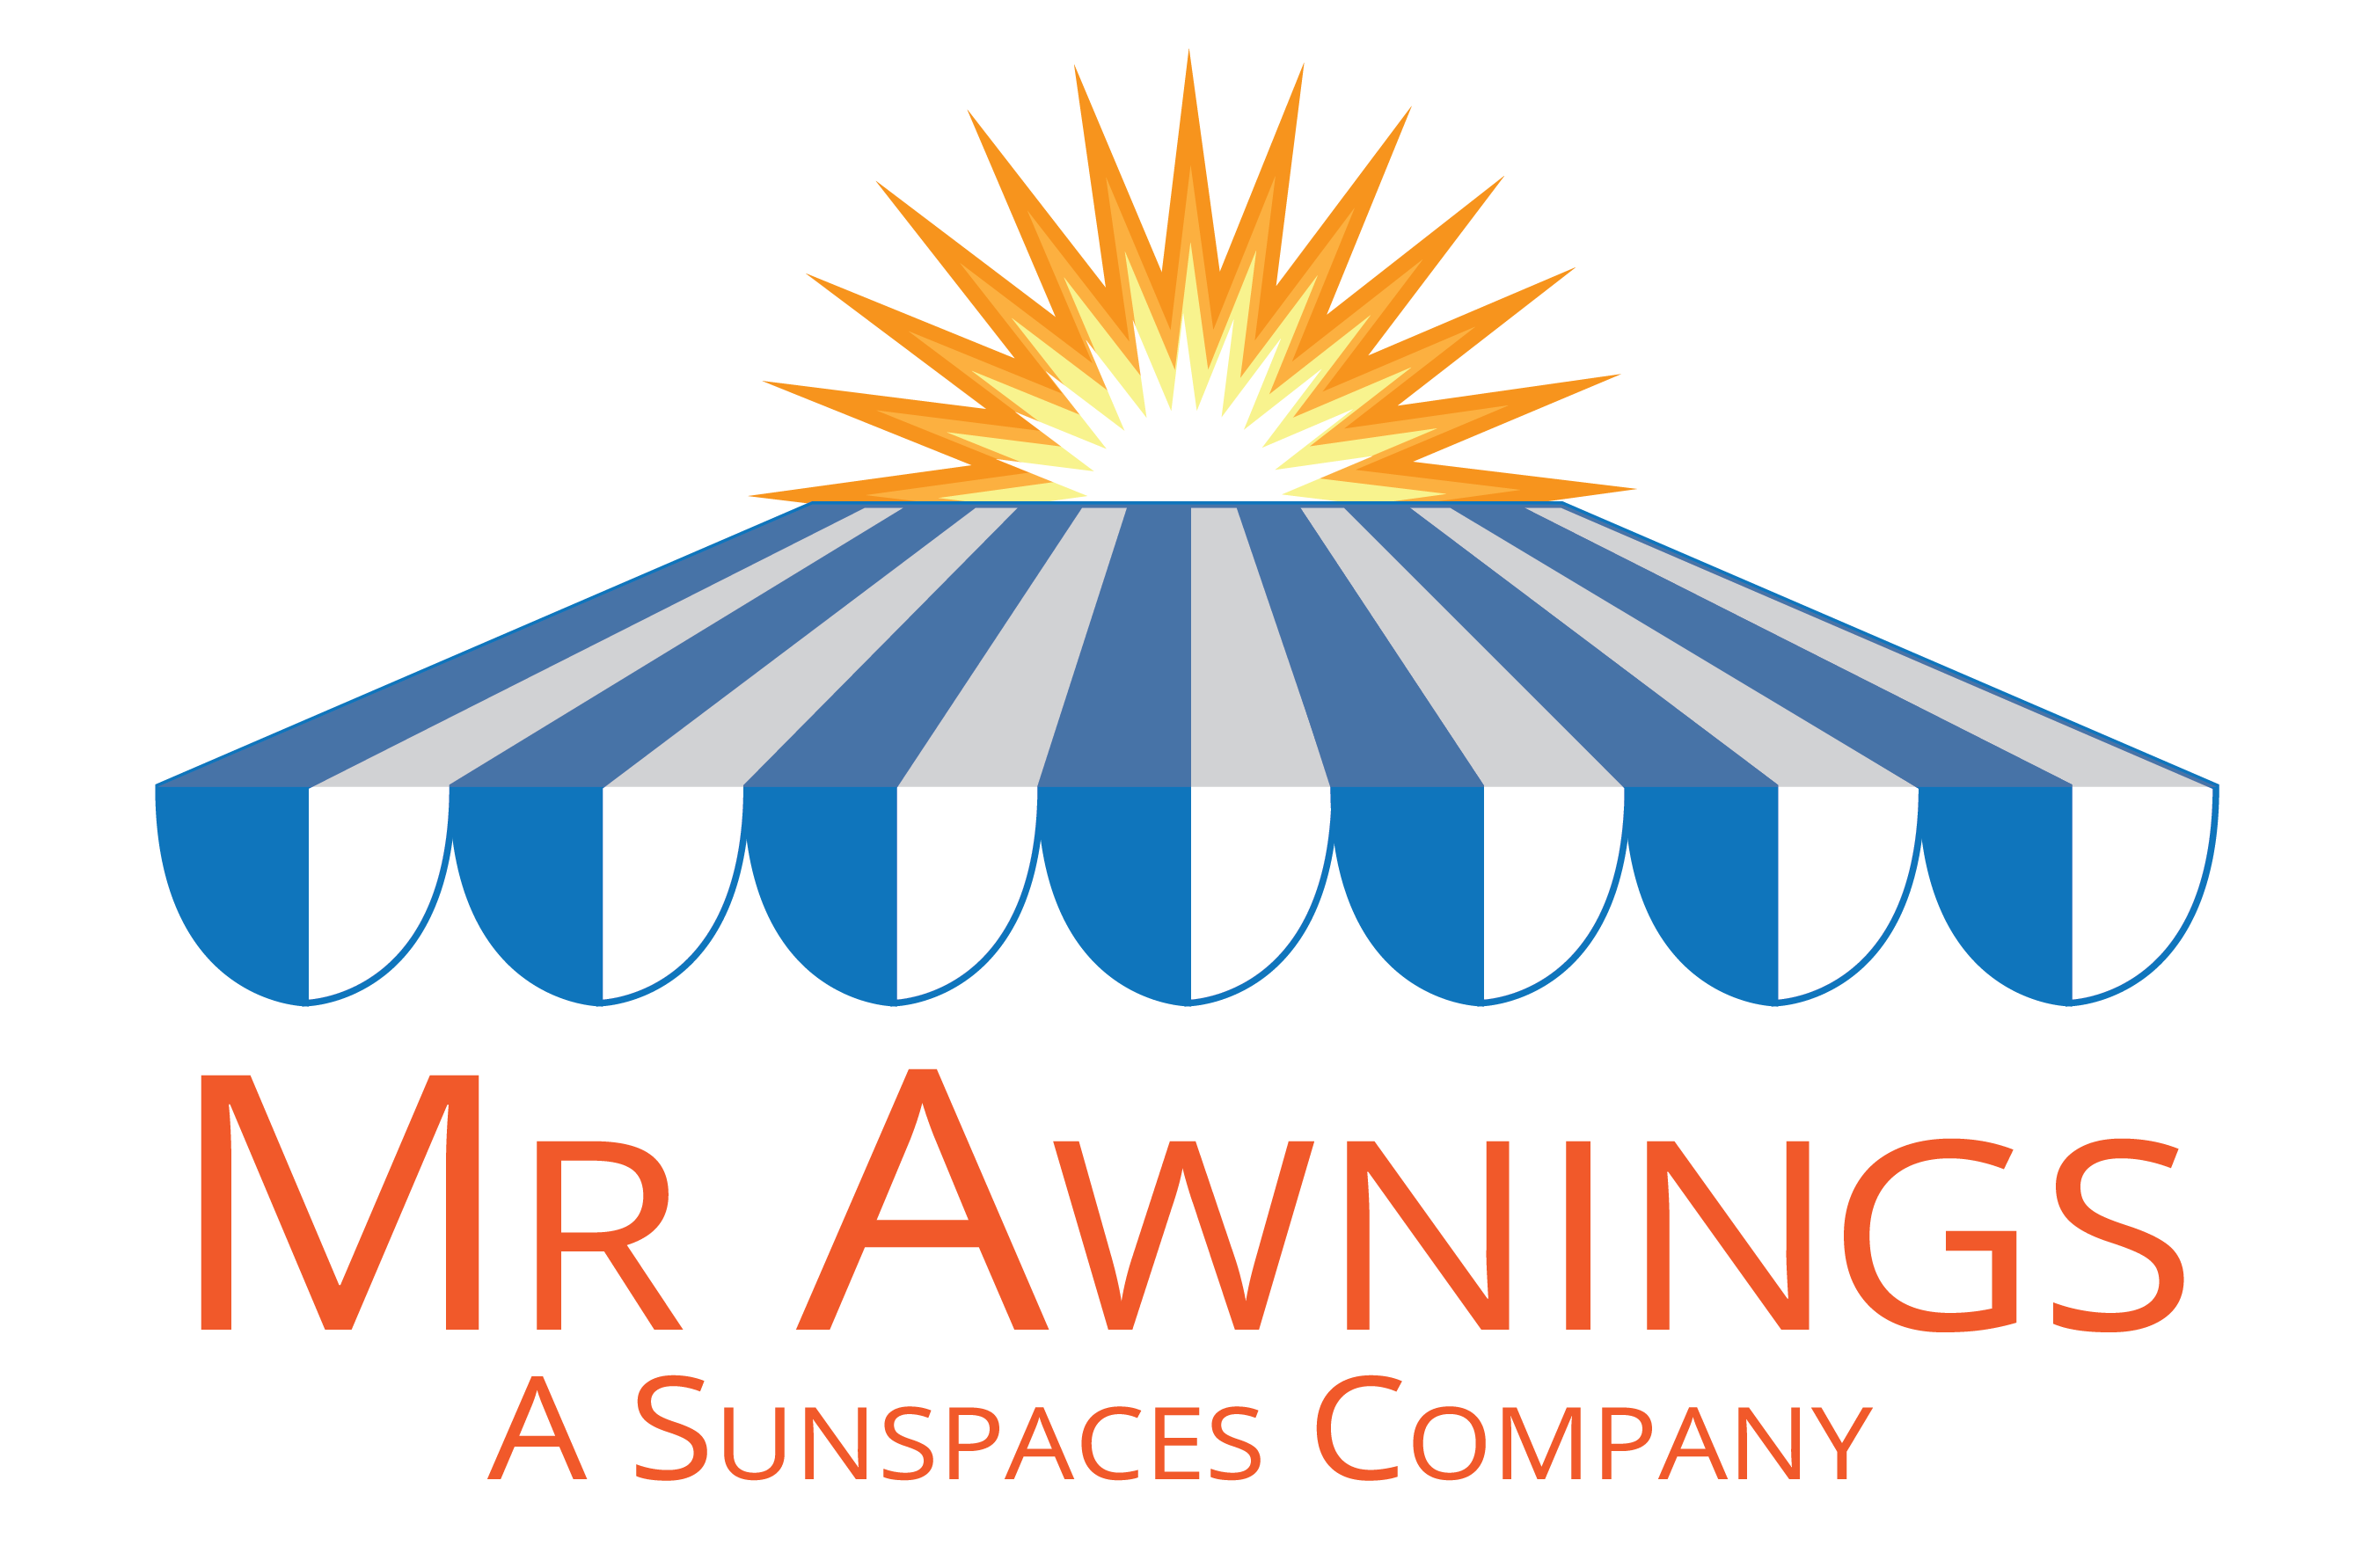 Mr Awnings - A Sunspaces Company